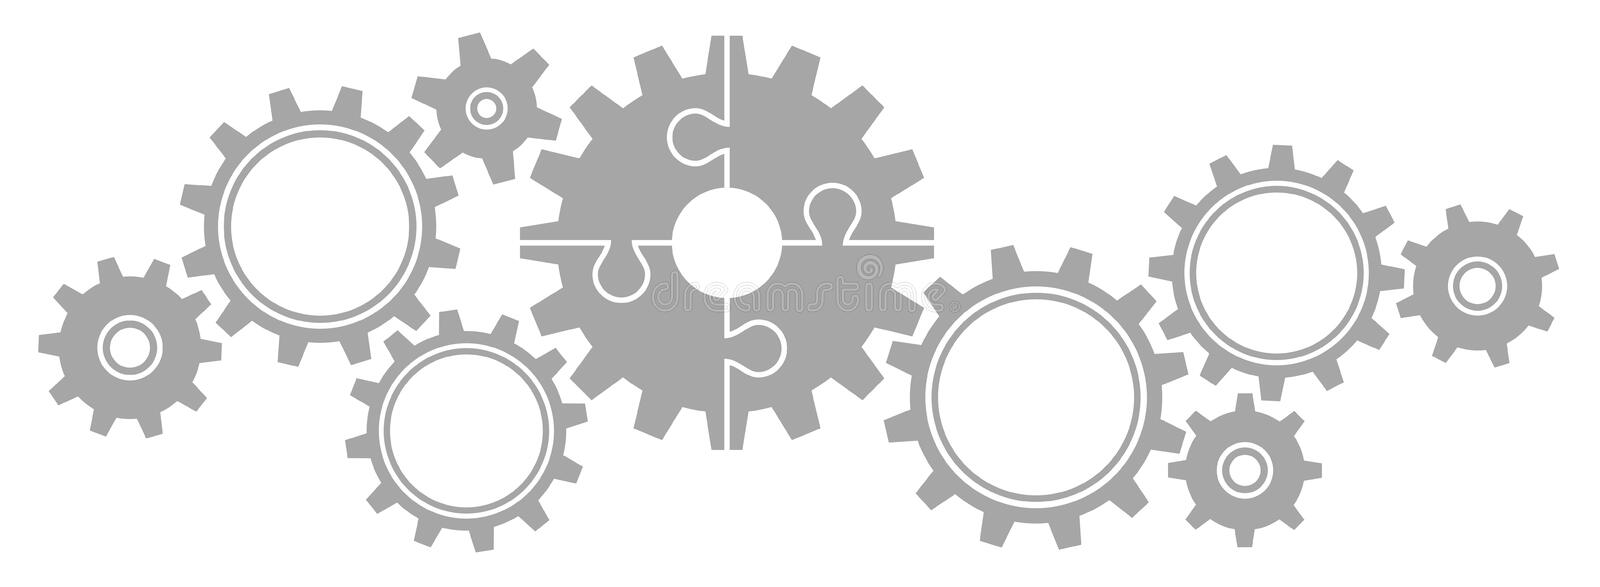 Gears Border Big And Little Puzzle Grey stock illustration